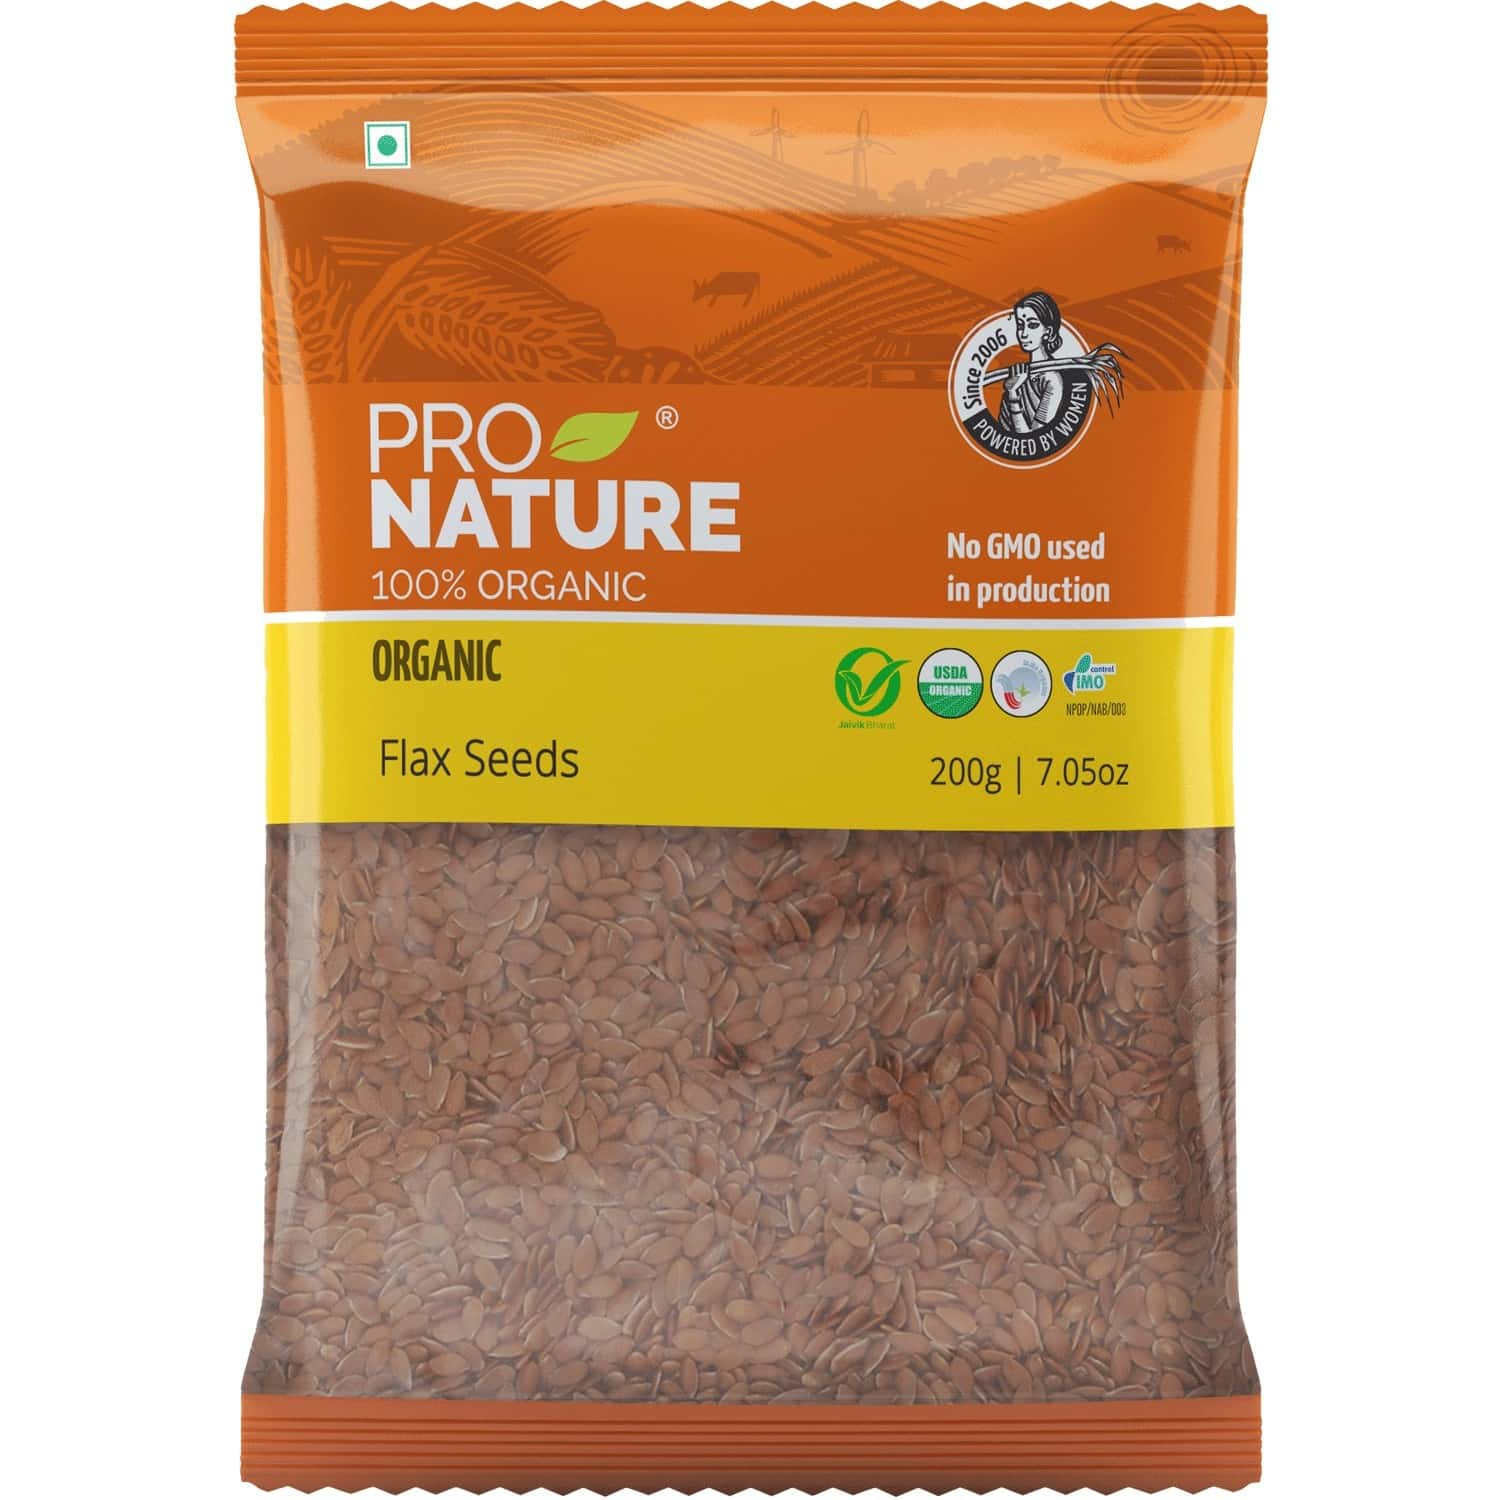 Pro Nature Organic Flax Seeds 200g Pouch